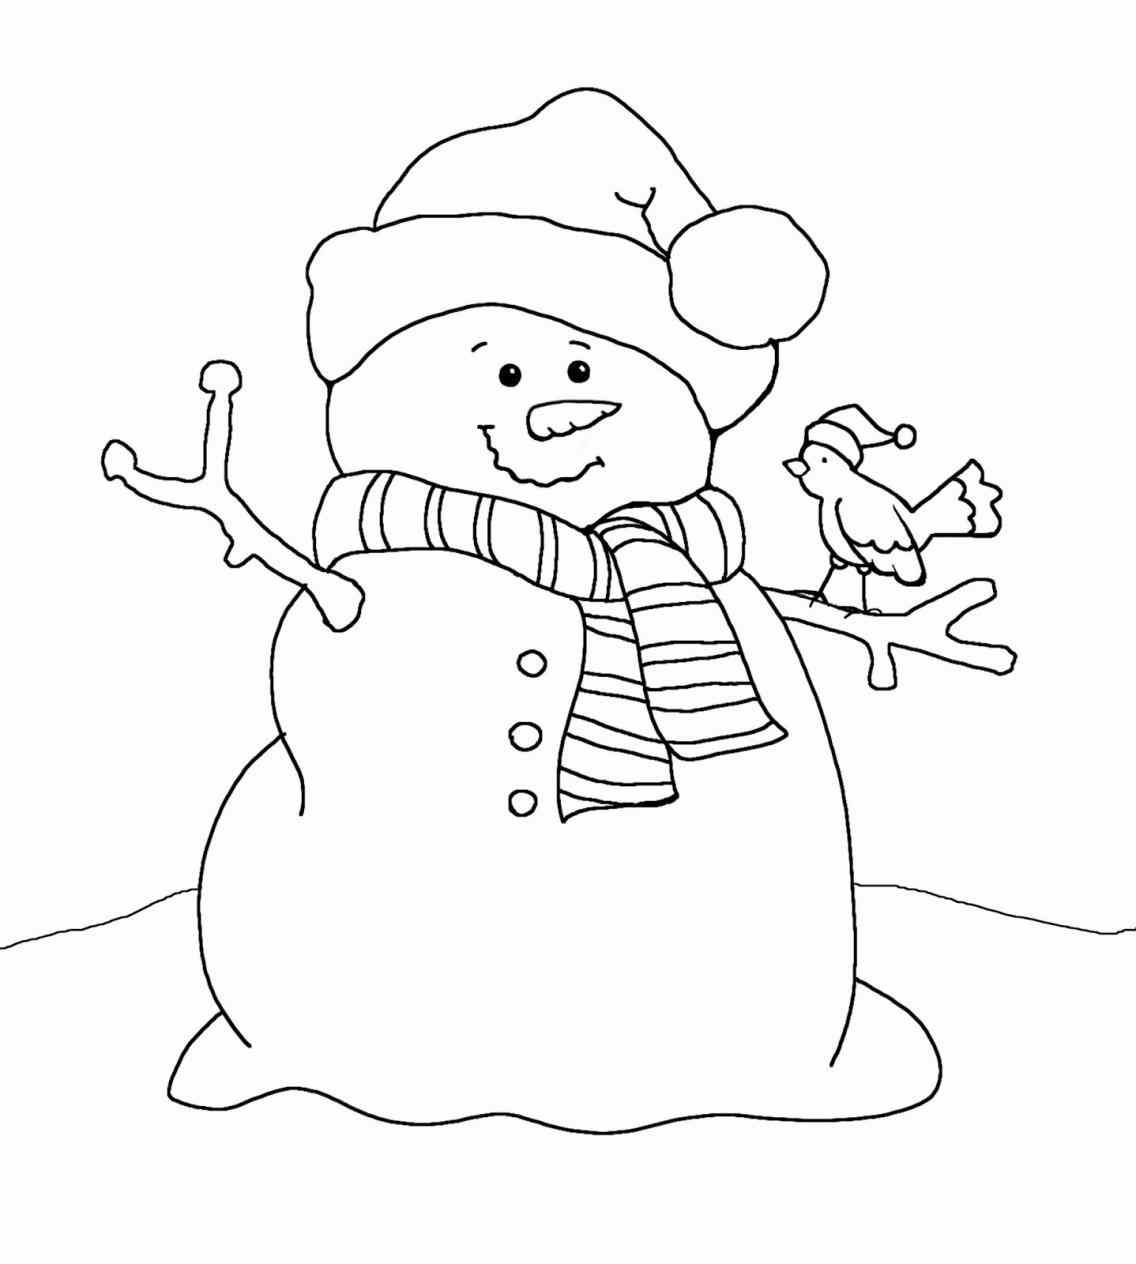 Coloring Pages Of Snow Man Luxury Coloring Pages Of A Snowman Christmas Coloring Pages Snowman Coloring Pages Snowman Quilt